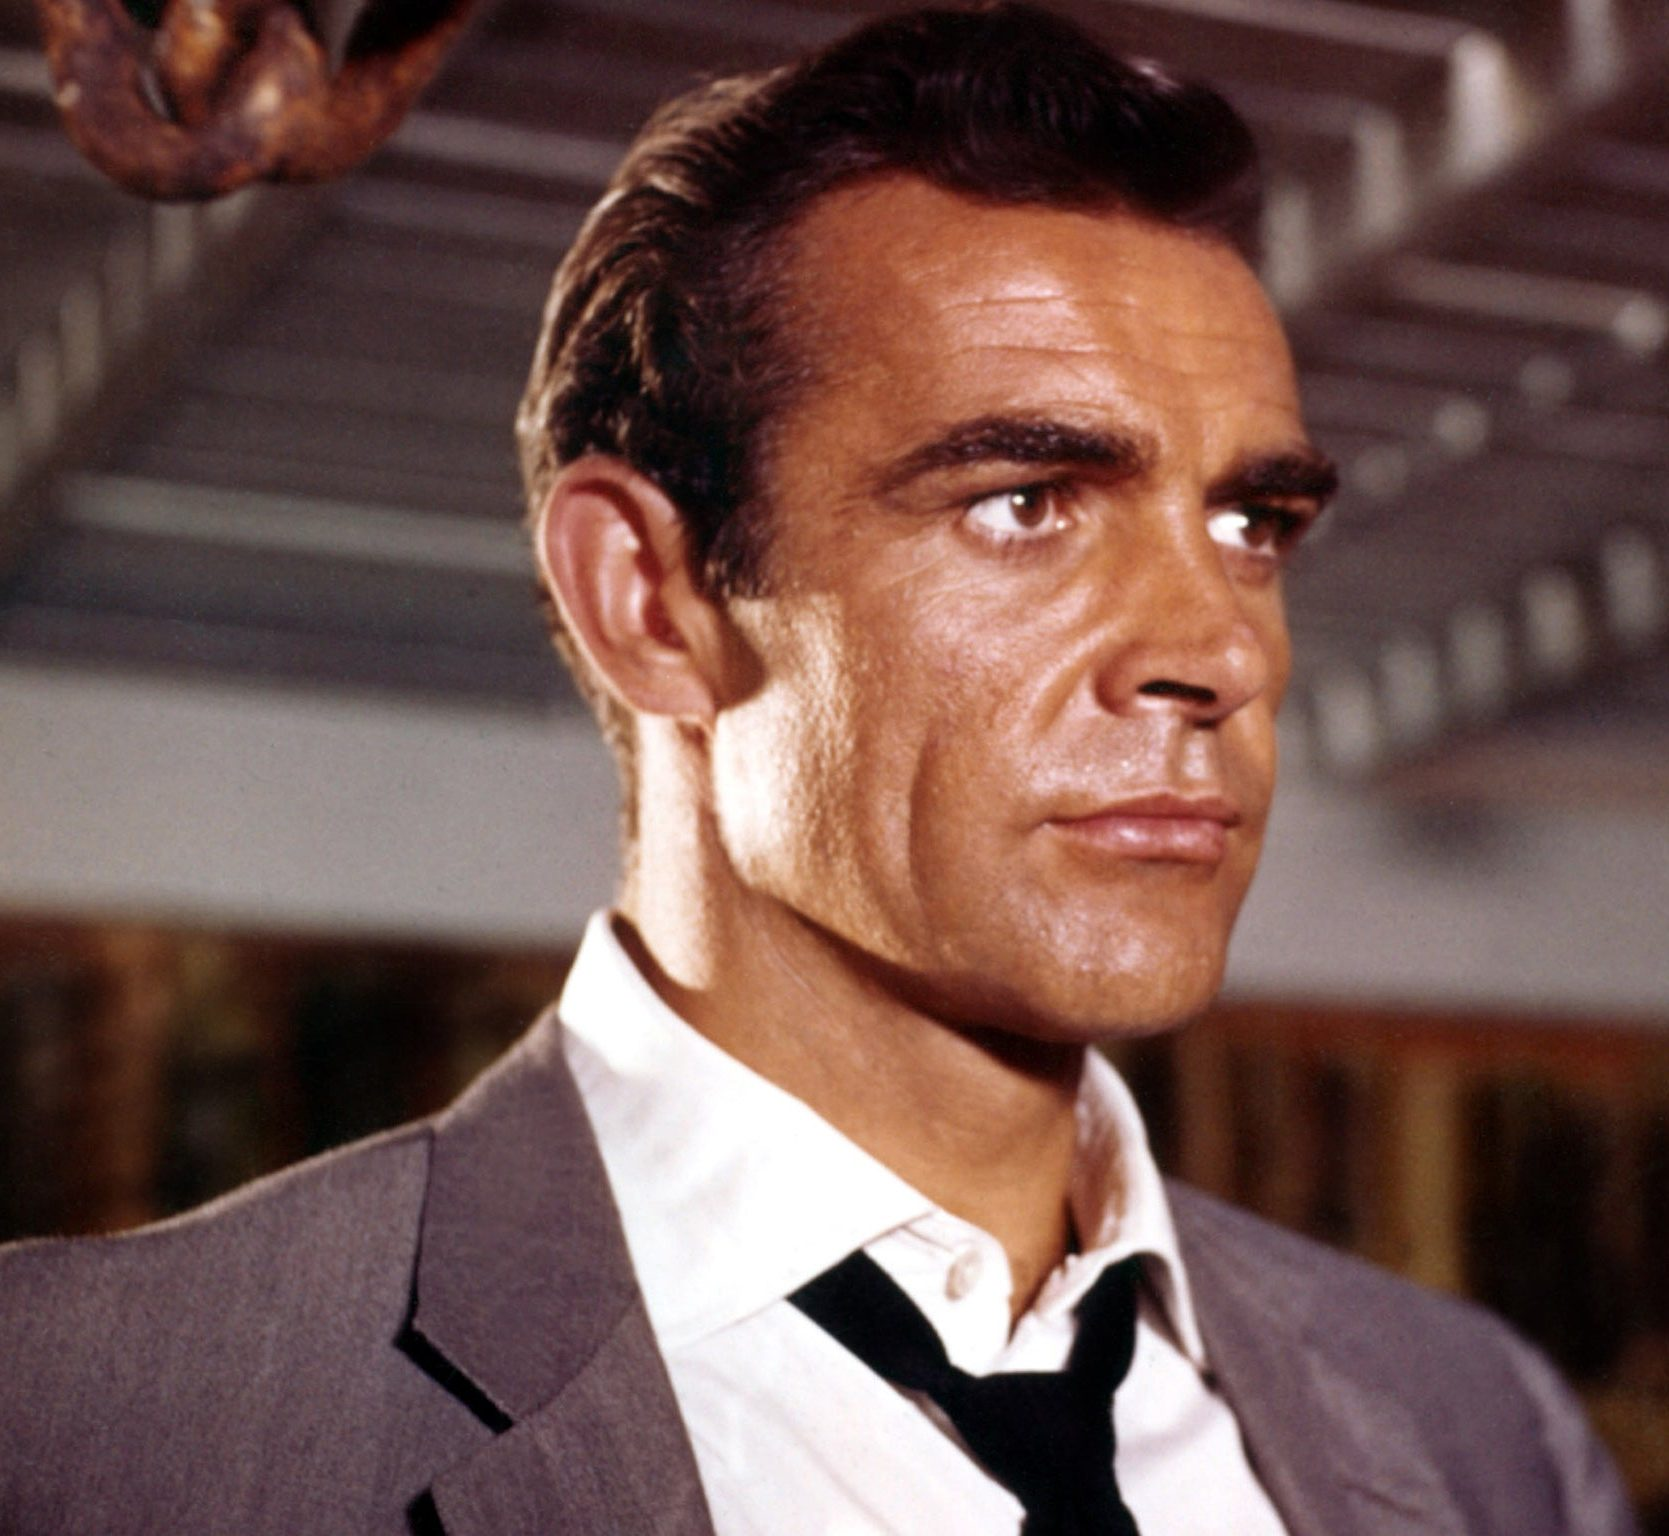 connery head e1604327859657 20 Things You Never Knew About Sean Connery